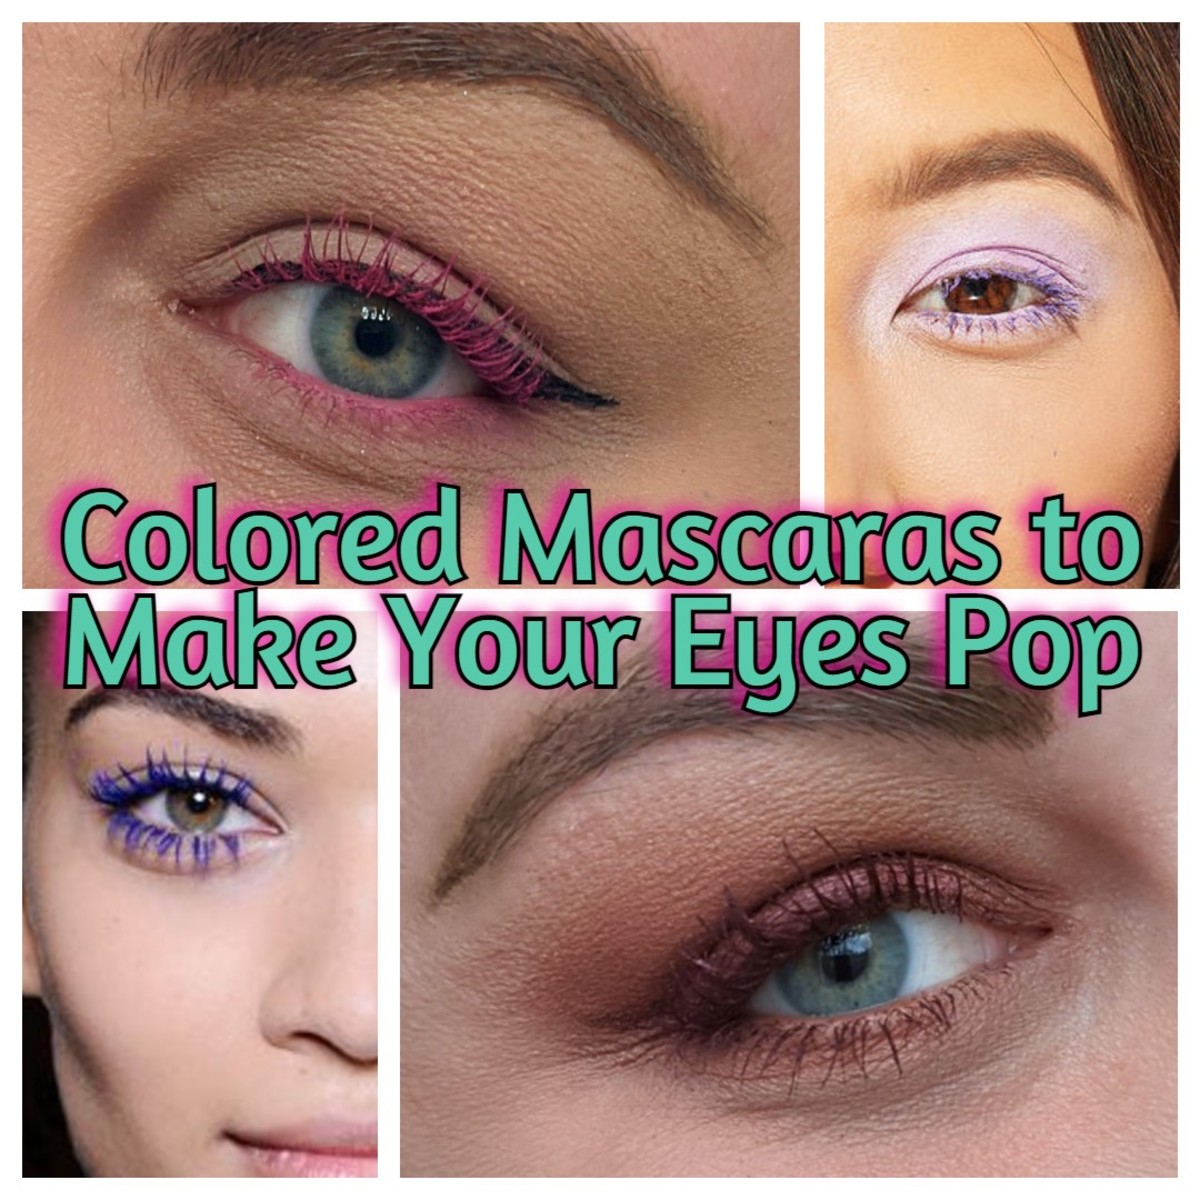 Make your eye color pop with colored mascara.